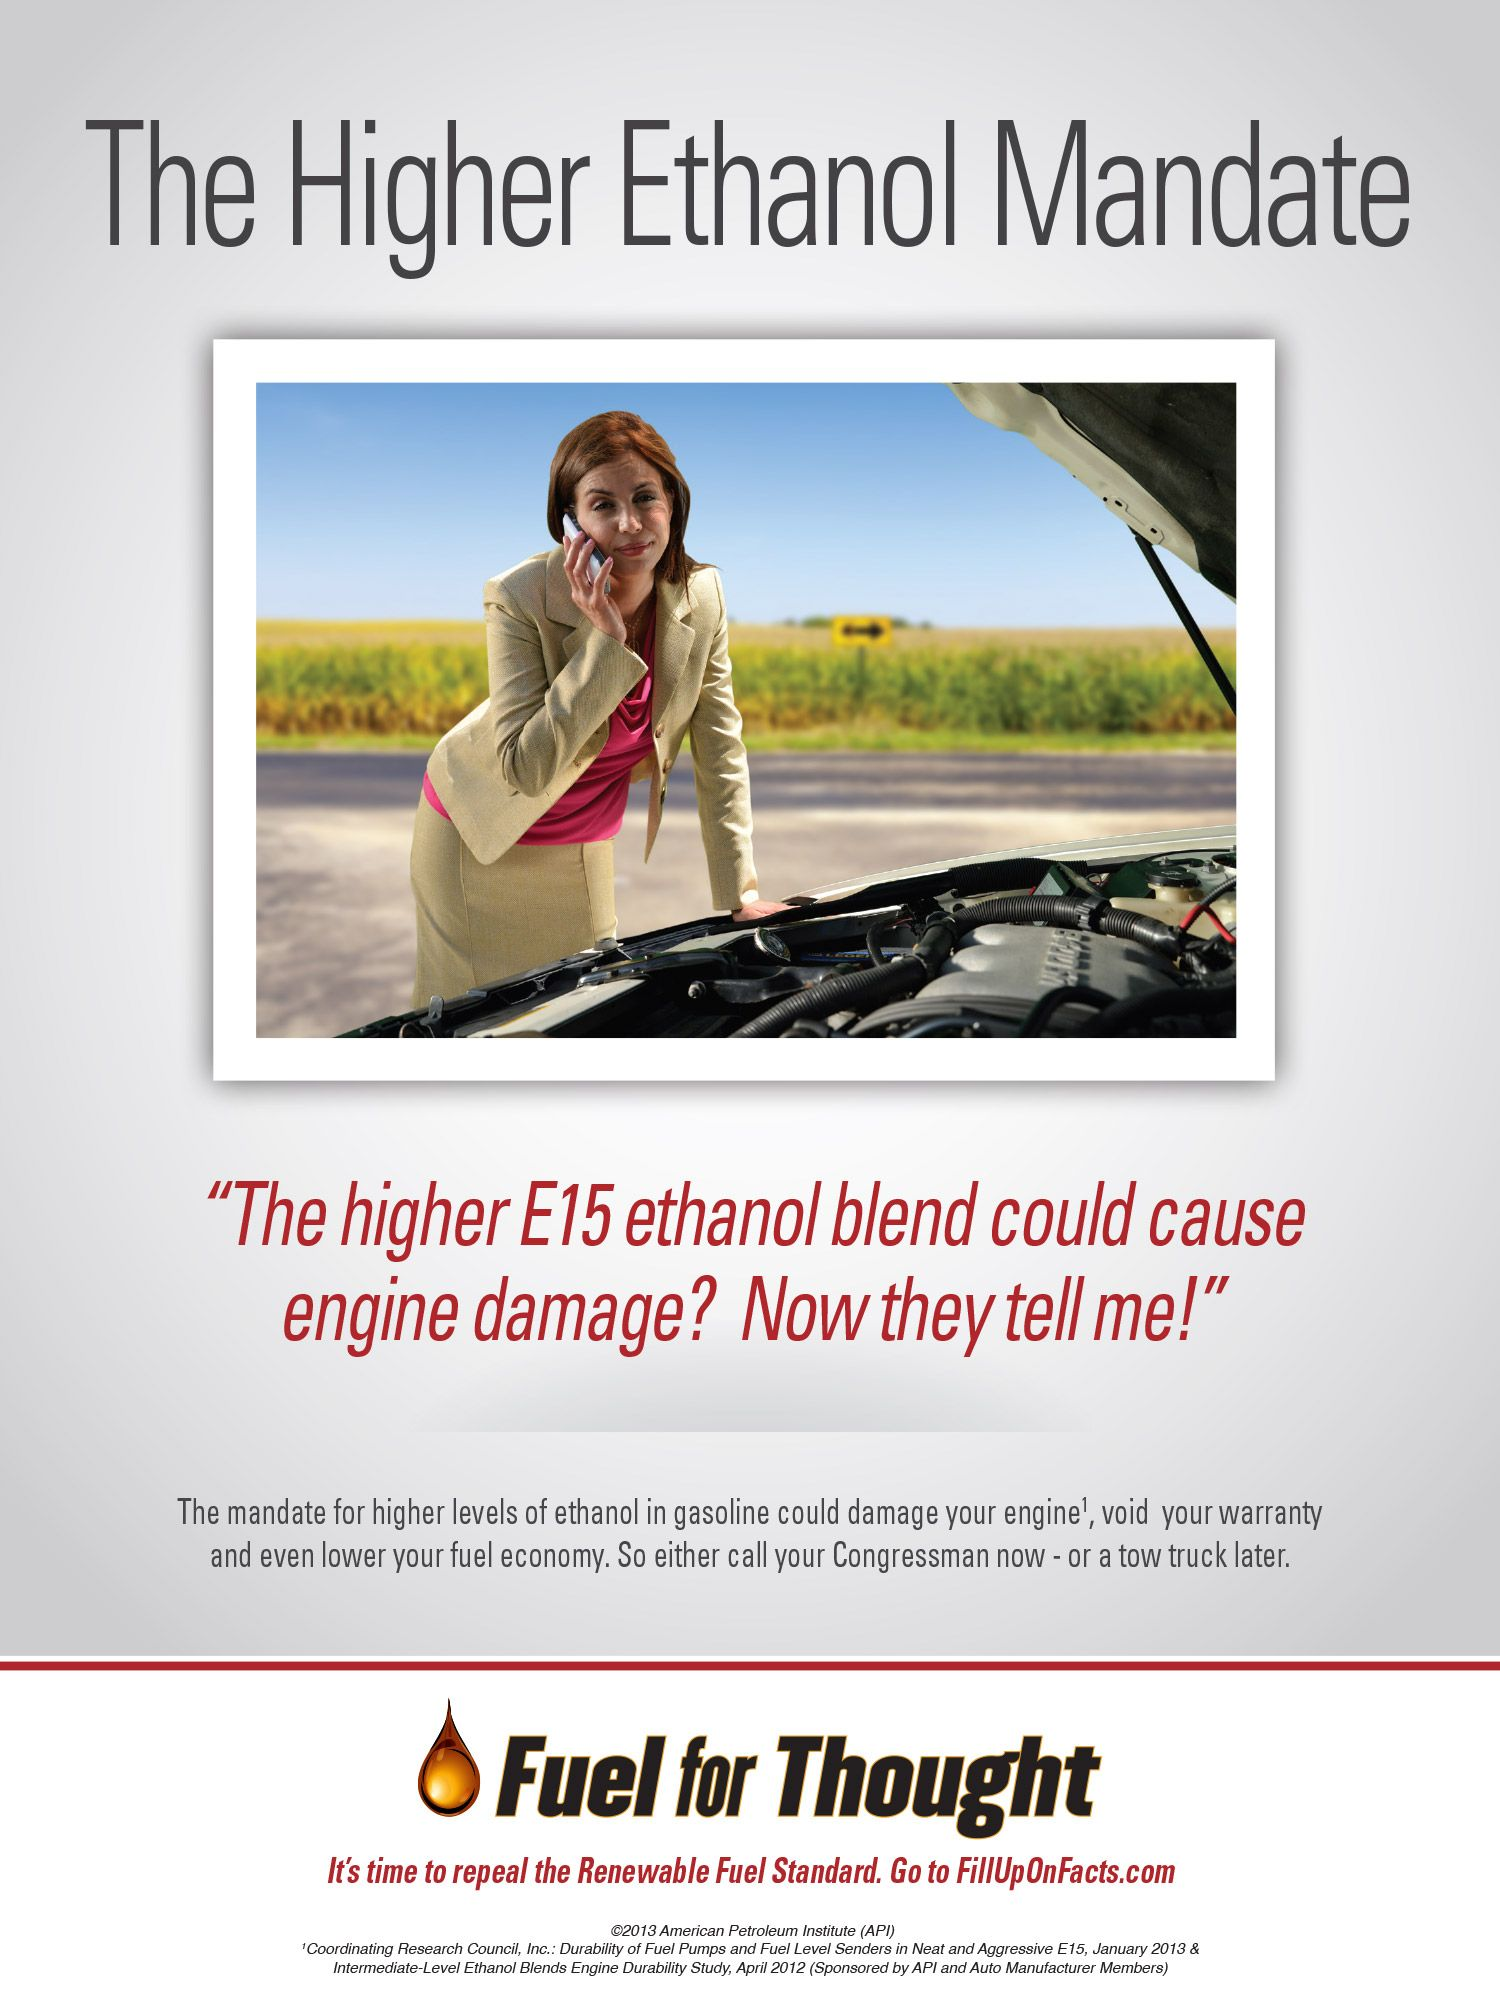 The mandate for higher levels of ethanol in gasoline could